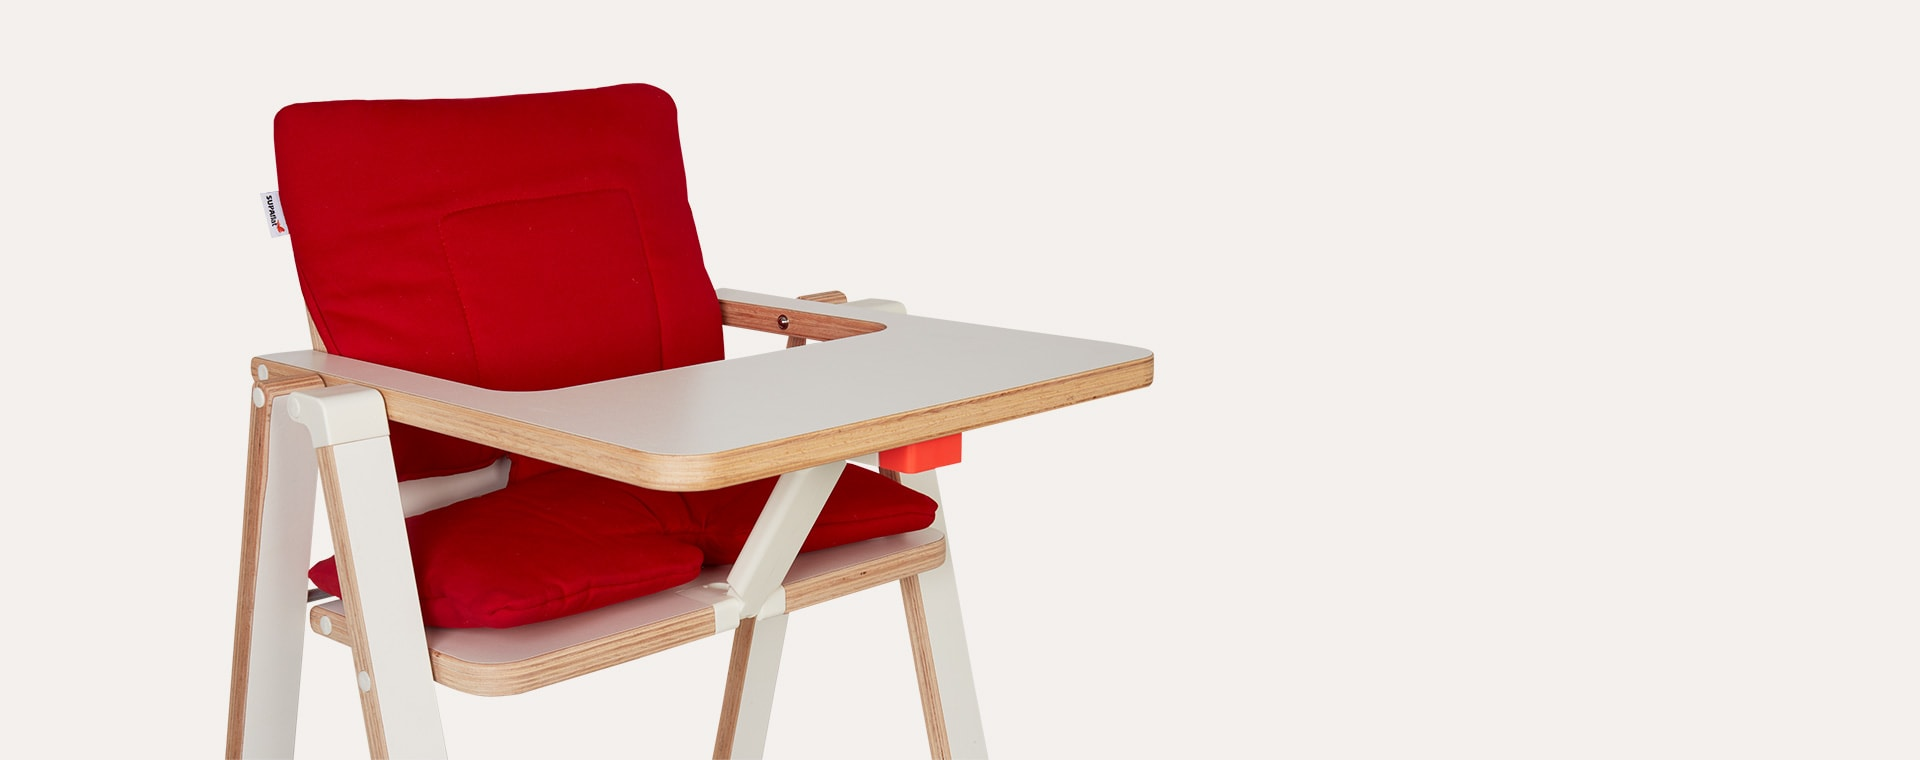 Signature Red SUPAflat Highchair Insert